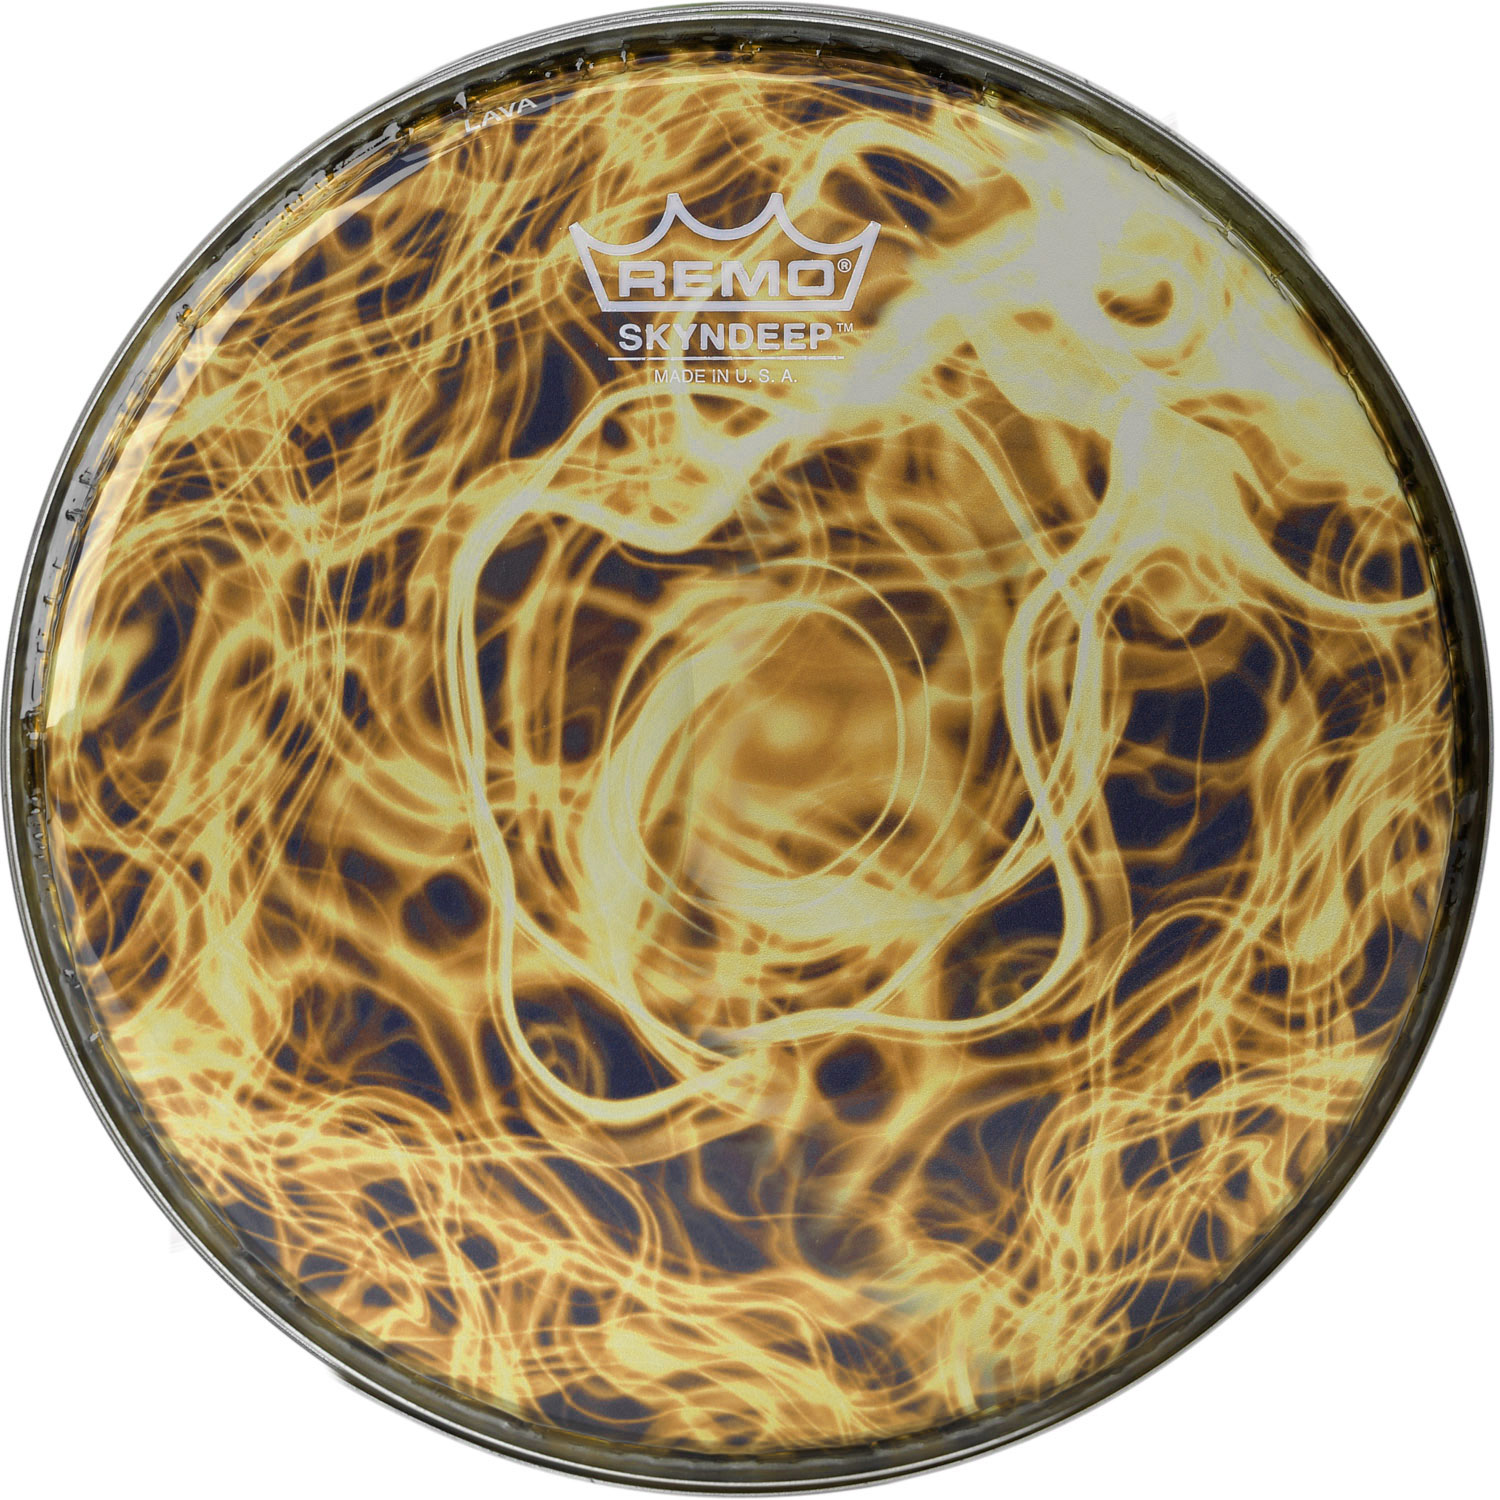 """Remo 8"""" R-Series Skyndeep Doumbek Drum Head with Yellow Wave Graphic"""